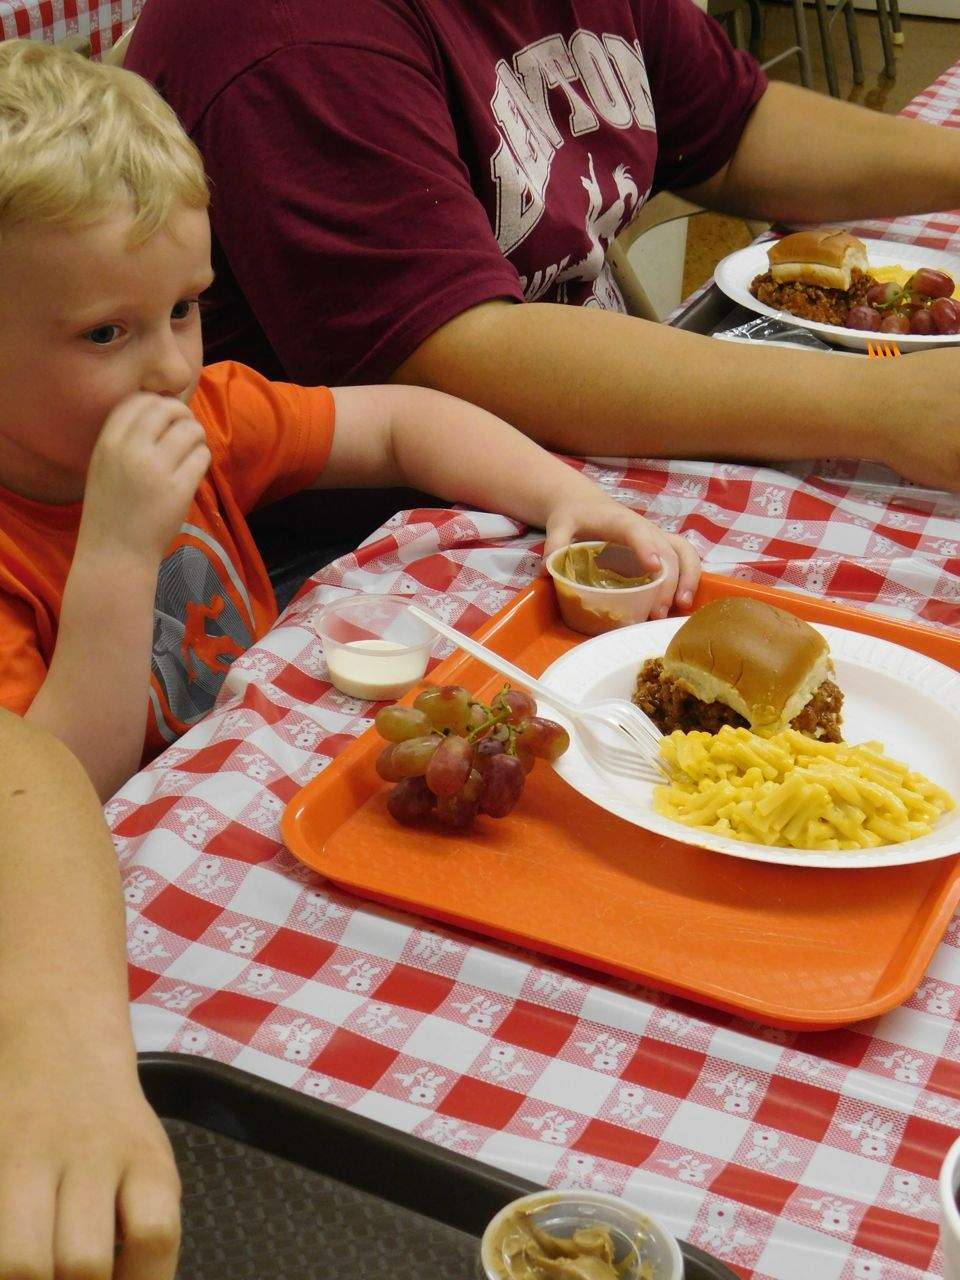 Three-year-old Gage Goeke enjoyed the carrots and peanut butter that were part of his Monday lunch.  'Everything tastes wonderful,' said Gage's mother, Heather Dale. 'It was very nice of them to do this.'